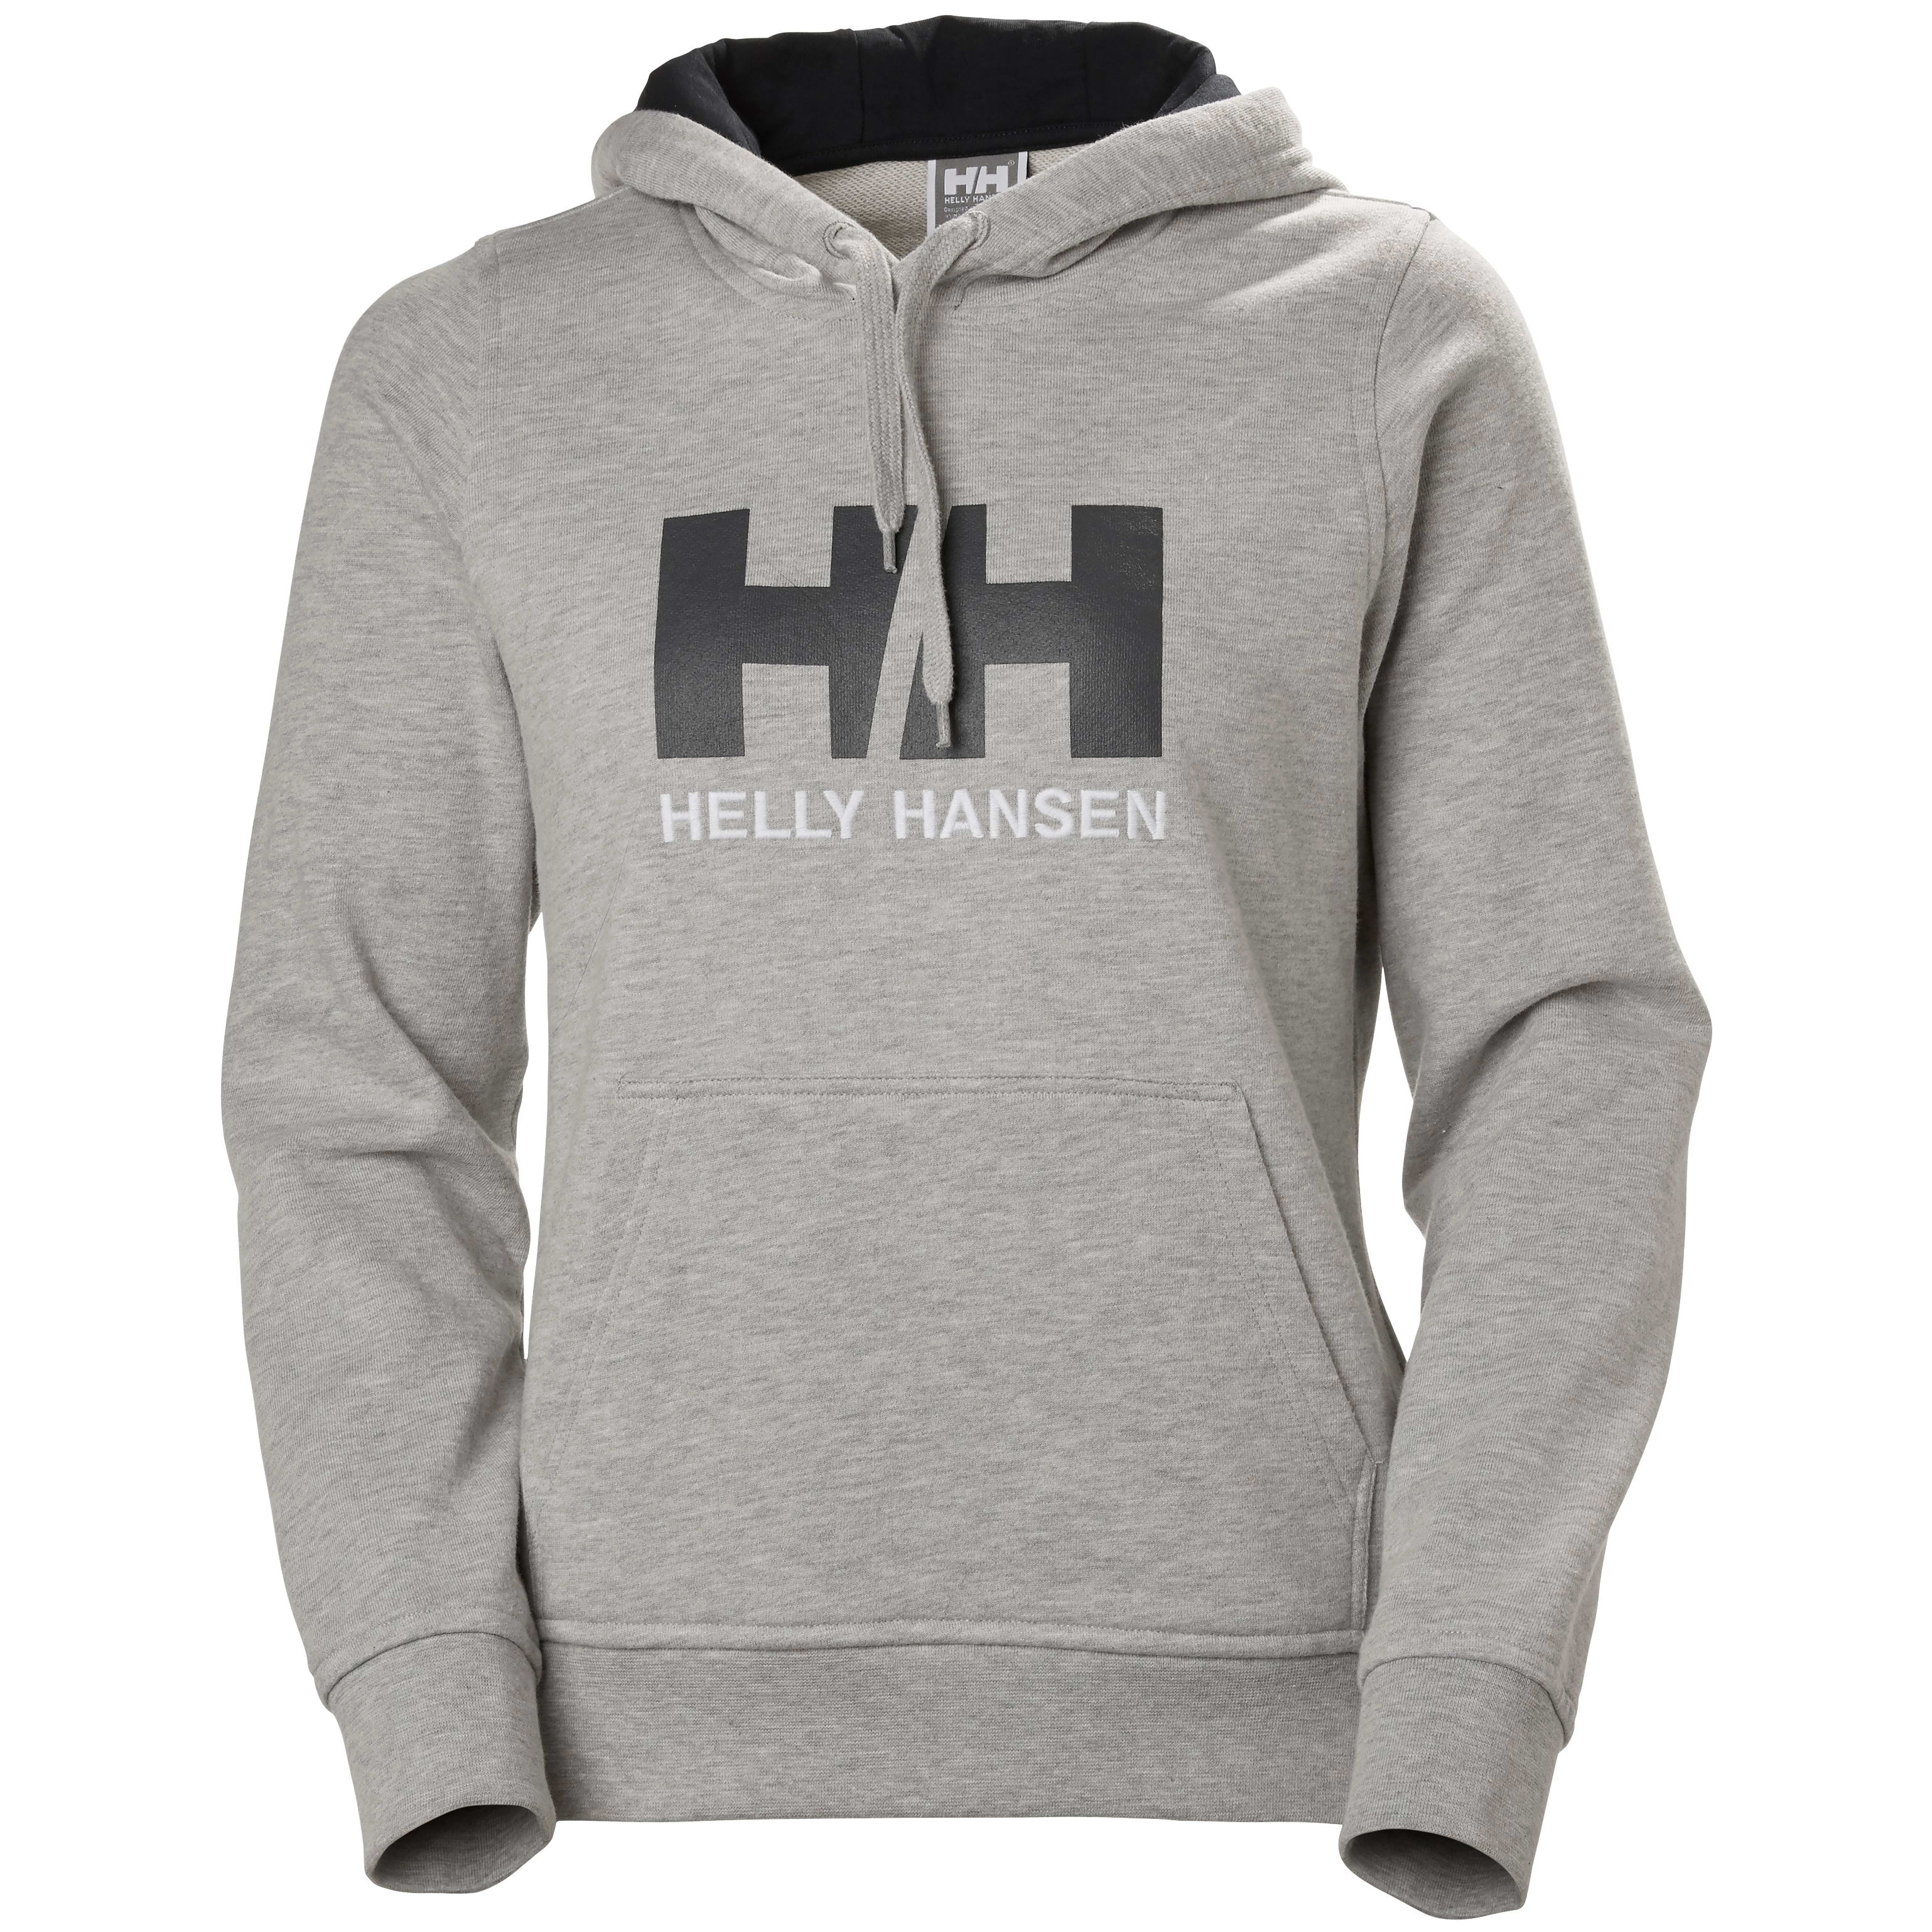 Buy Helly Hansen W Hh Logo Hoodie From Outnorth